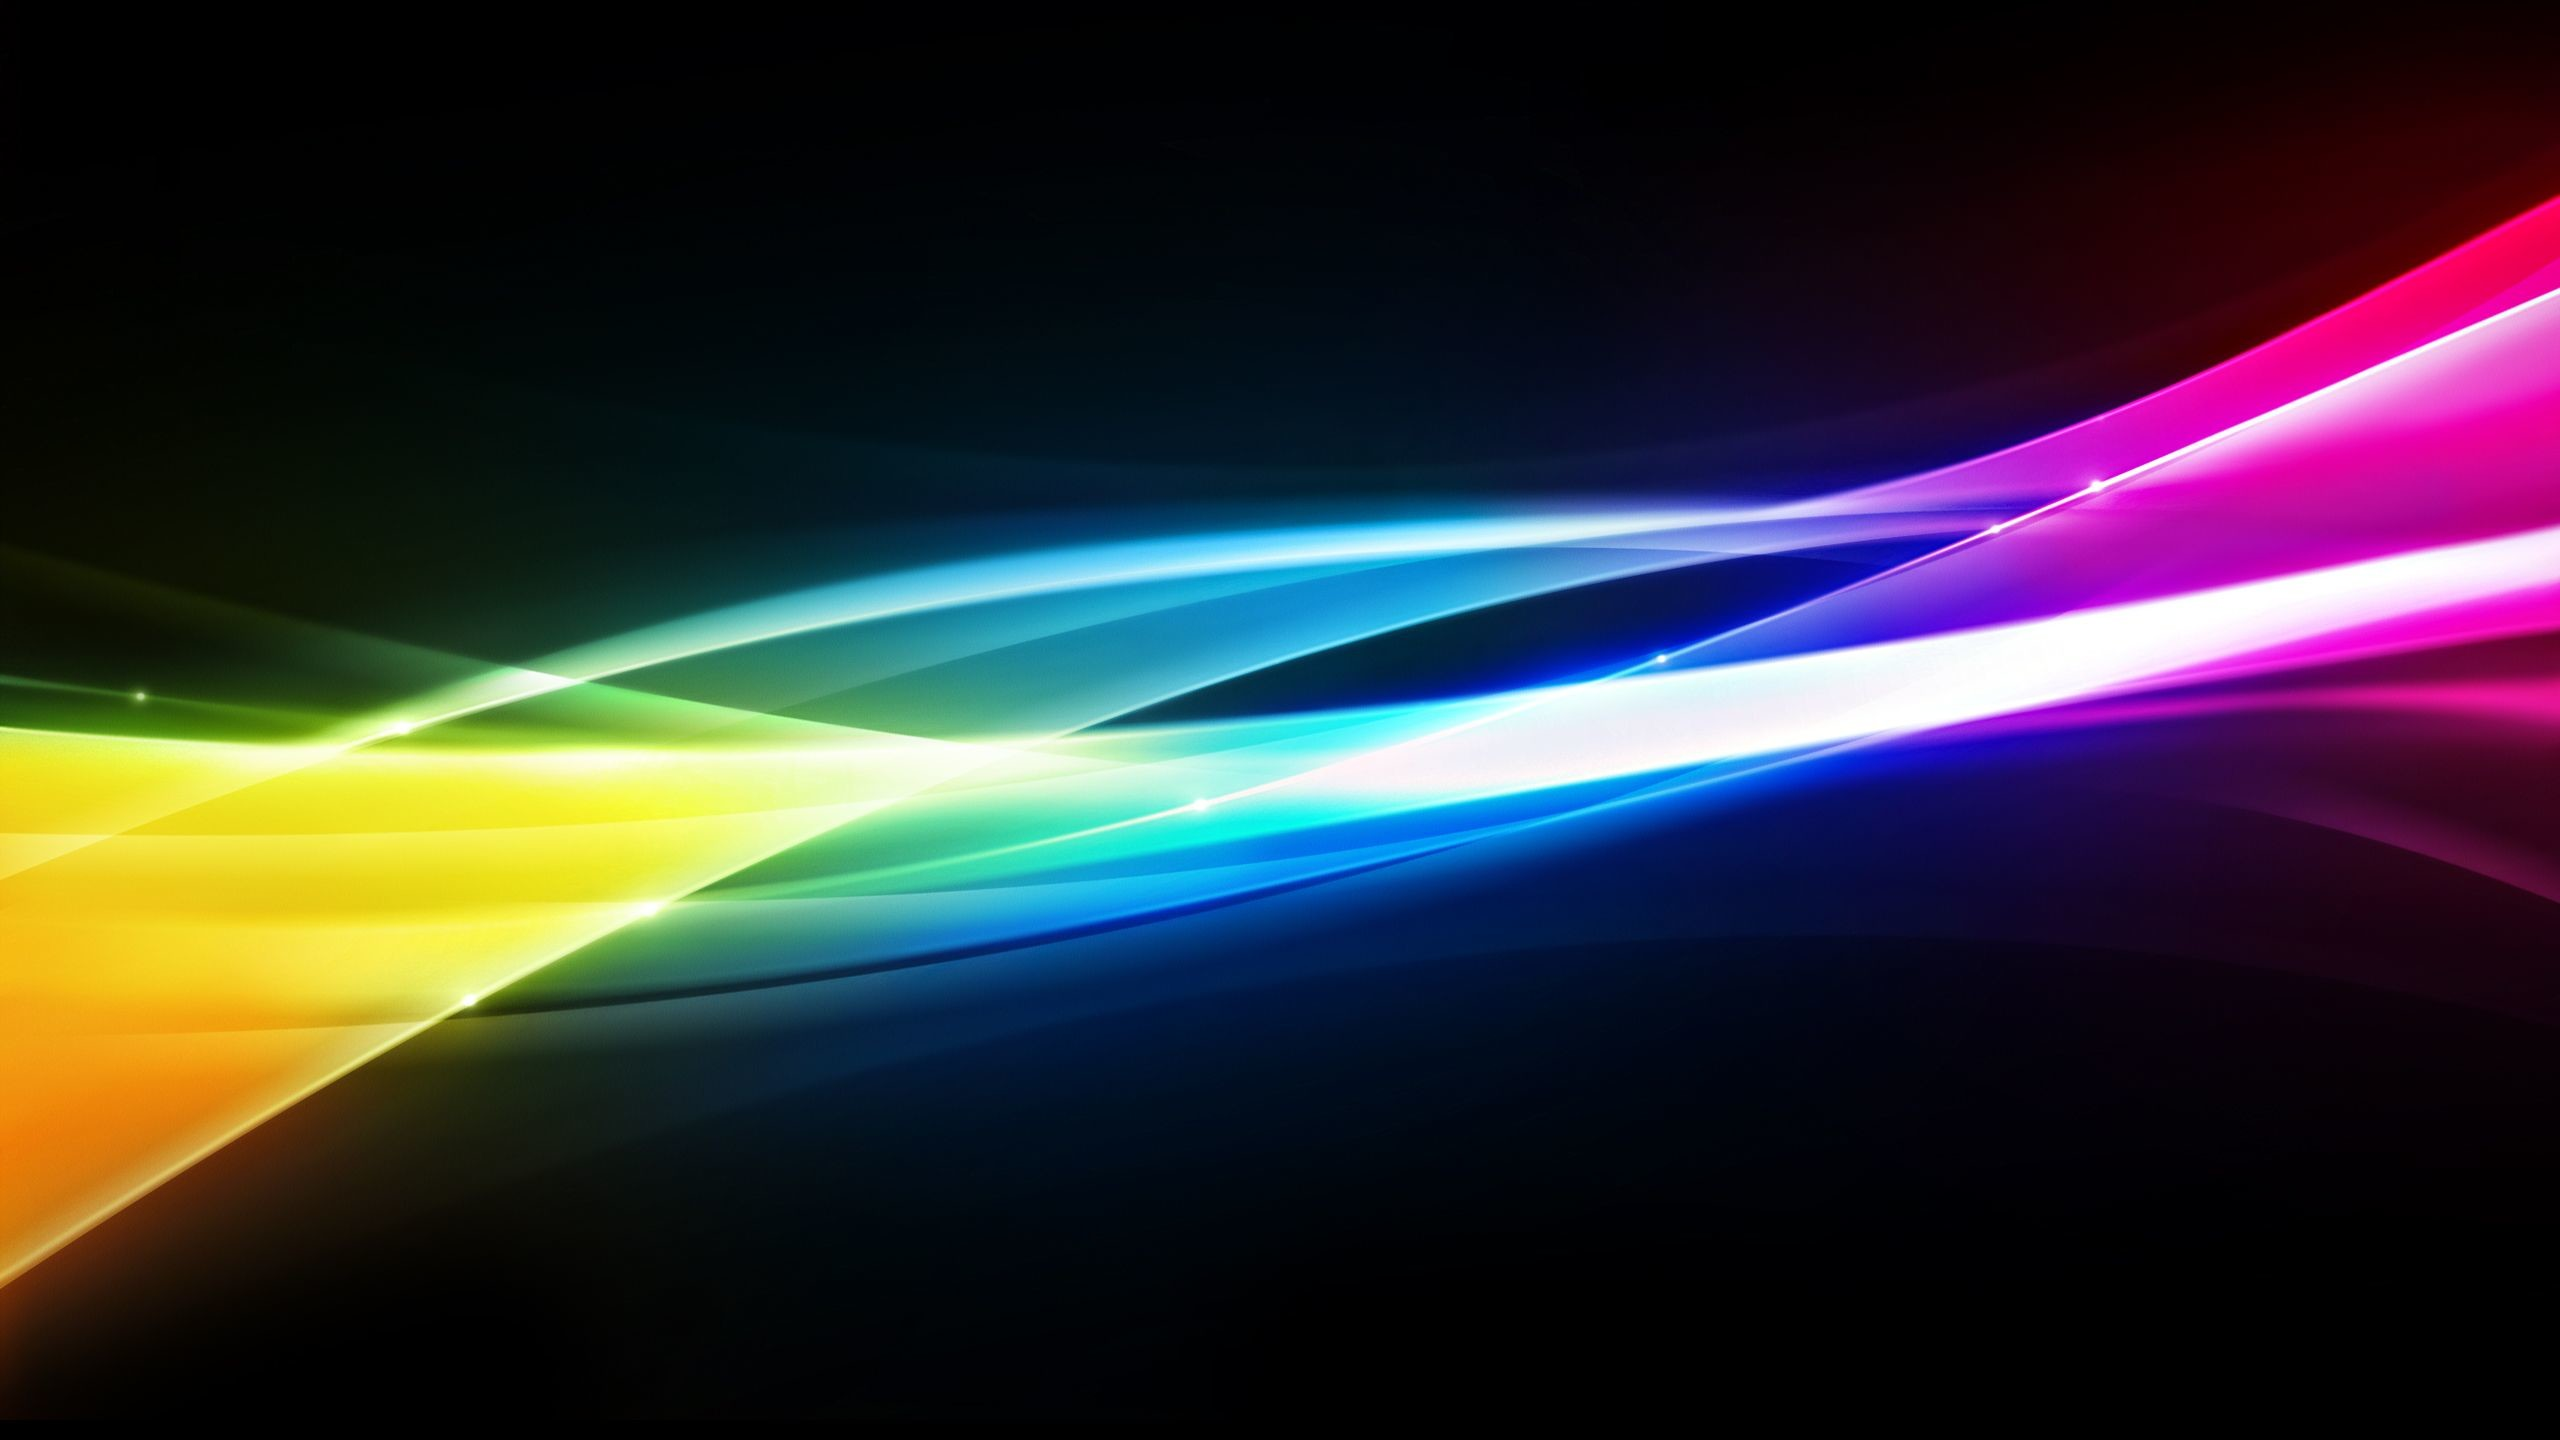 2560x1440 Moving Backgrounds For Ipad wallpaper - 1223110